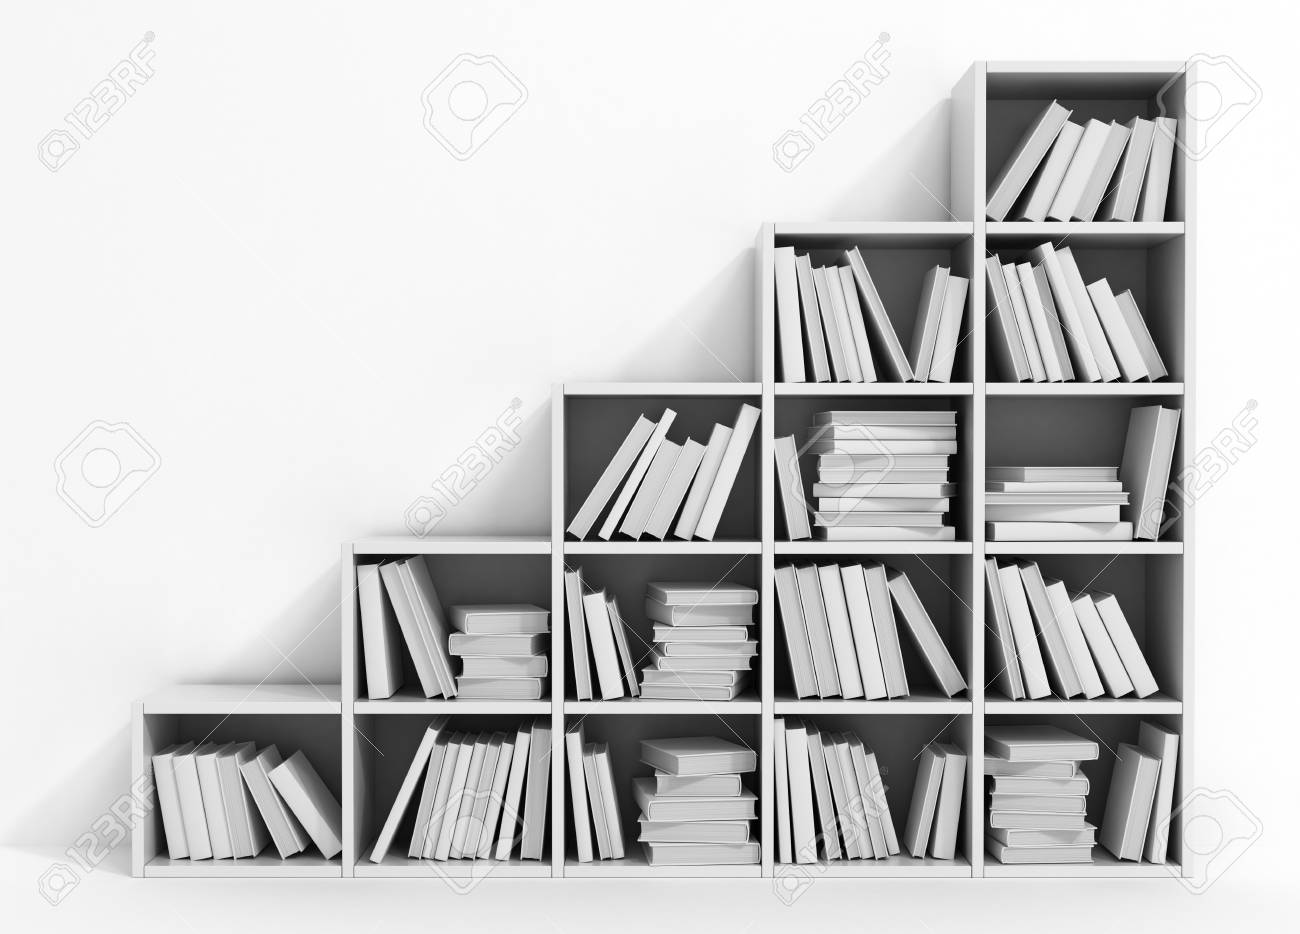 Library Bookshelf Full Of Books White Books On The White Shelf